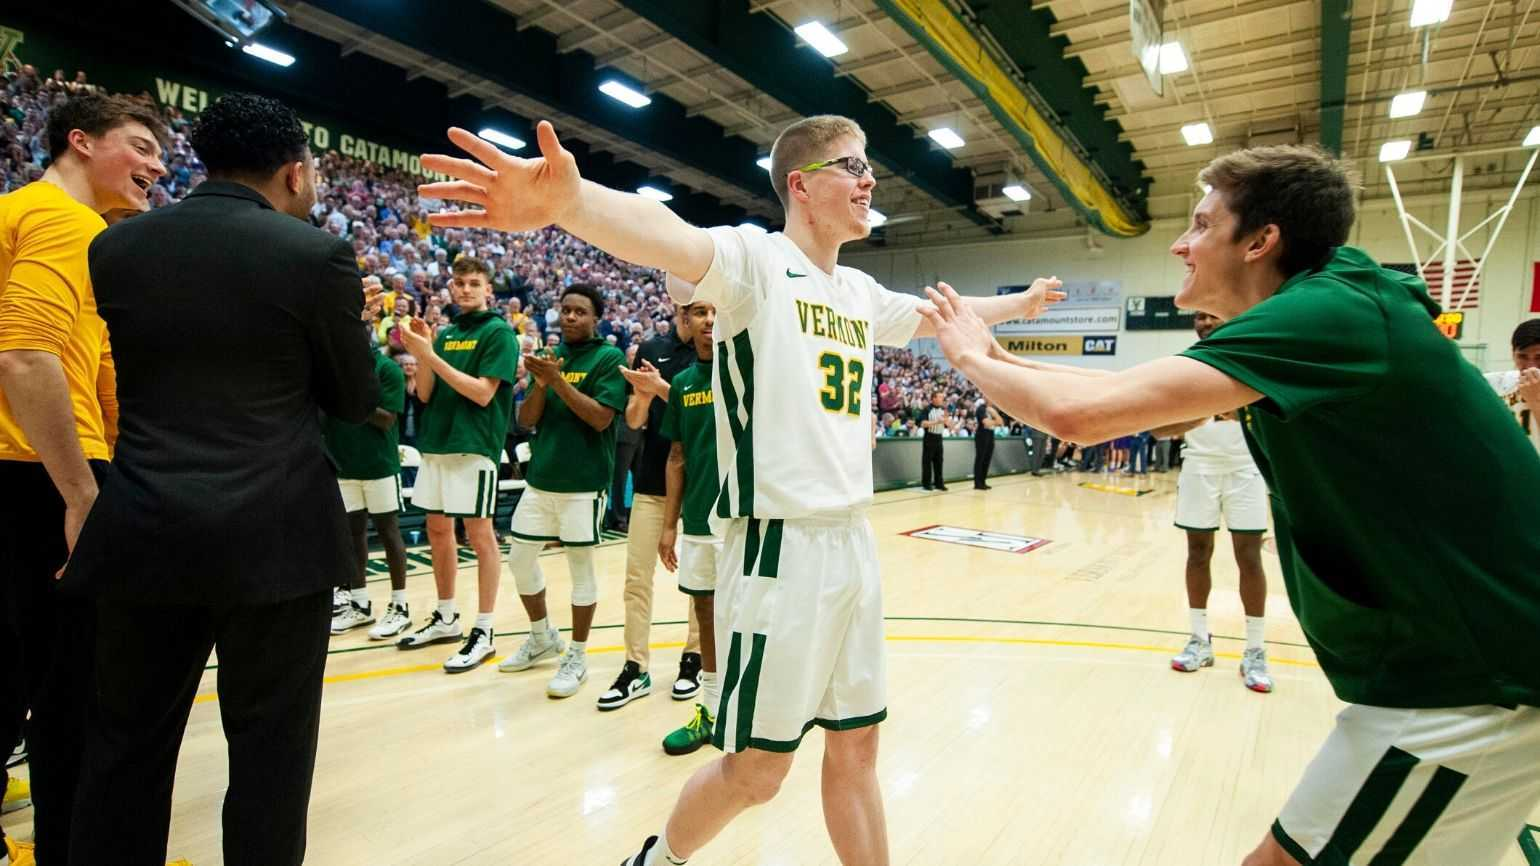 The Inspiring Moment Josh Speidel Scored in a College Basketball Game